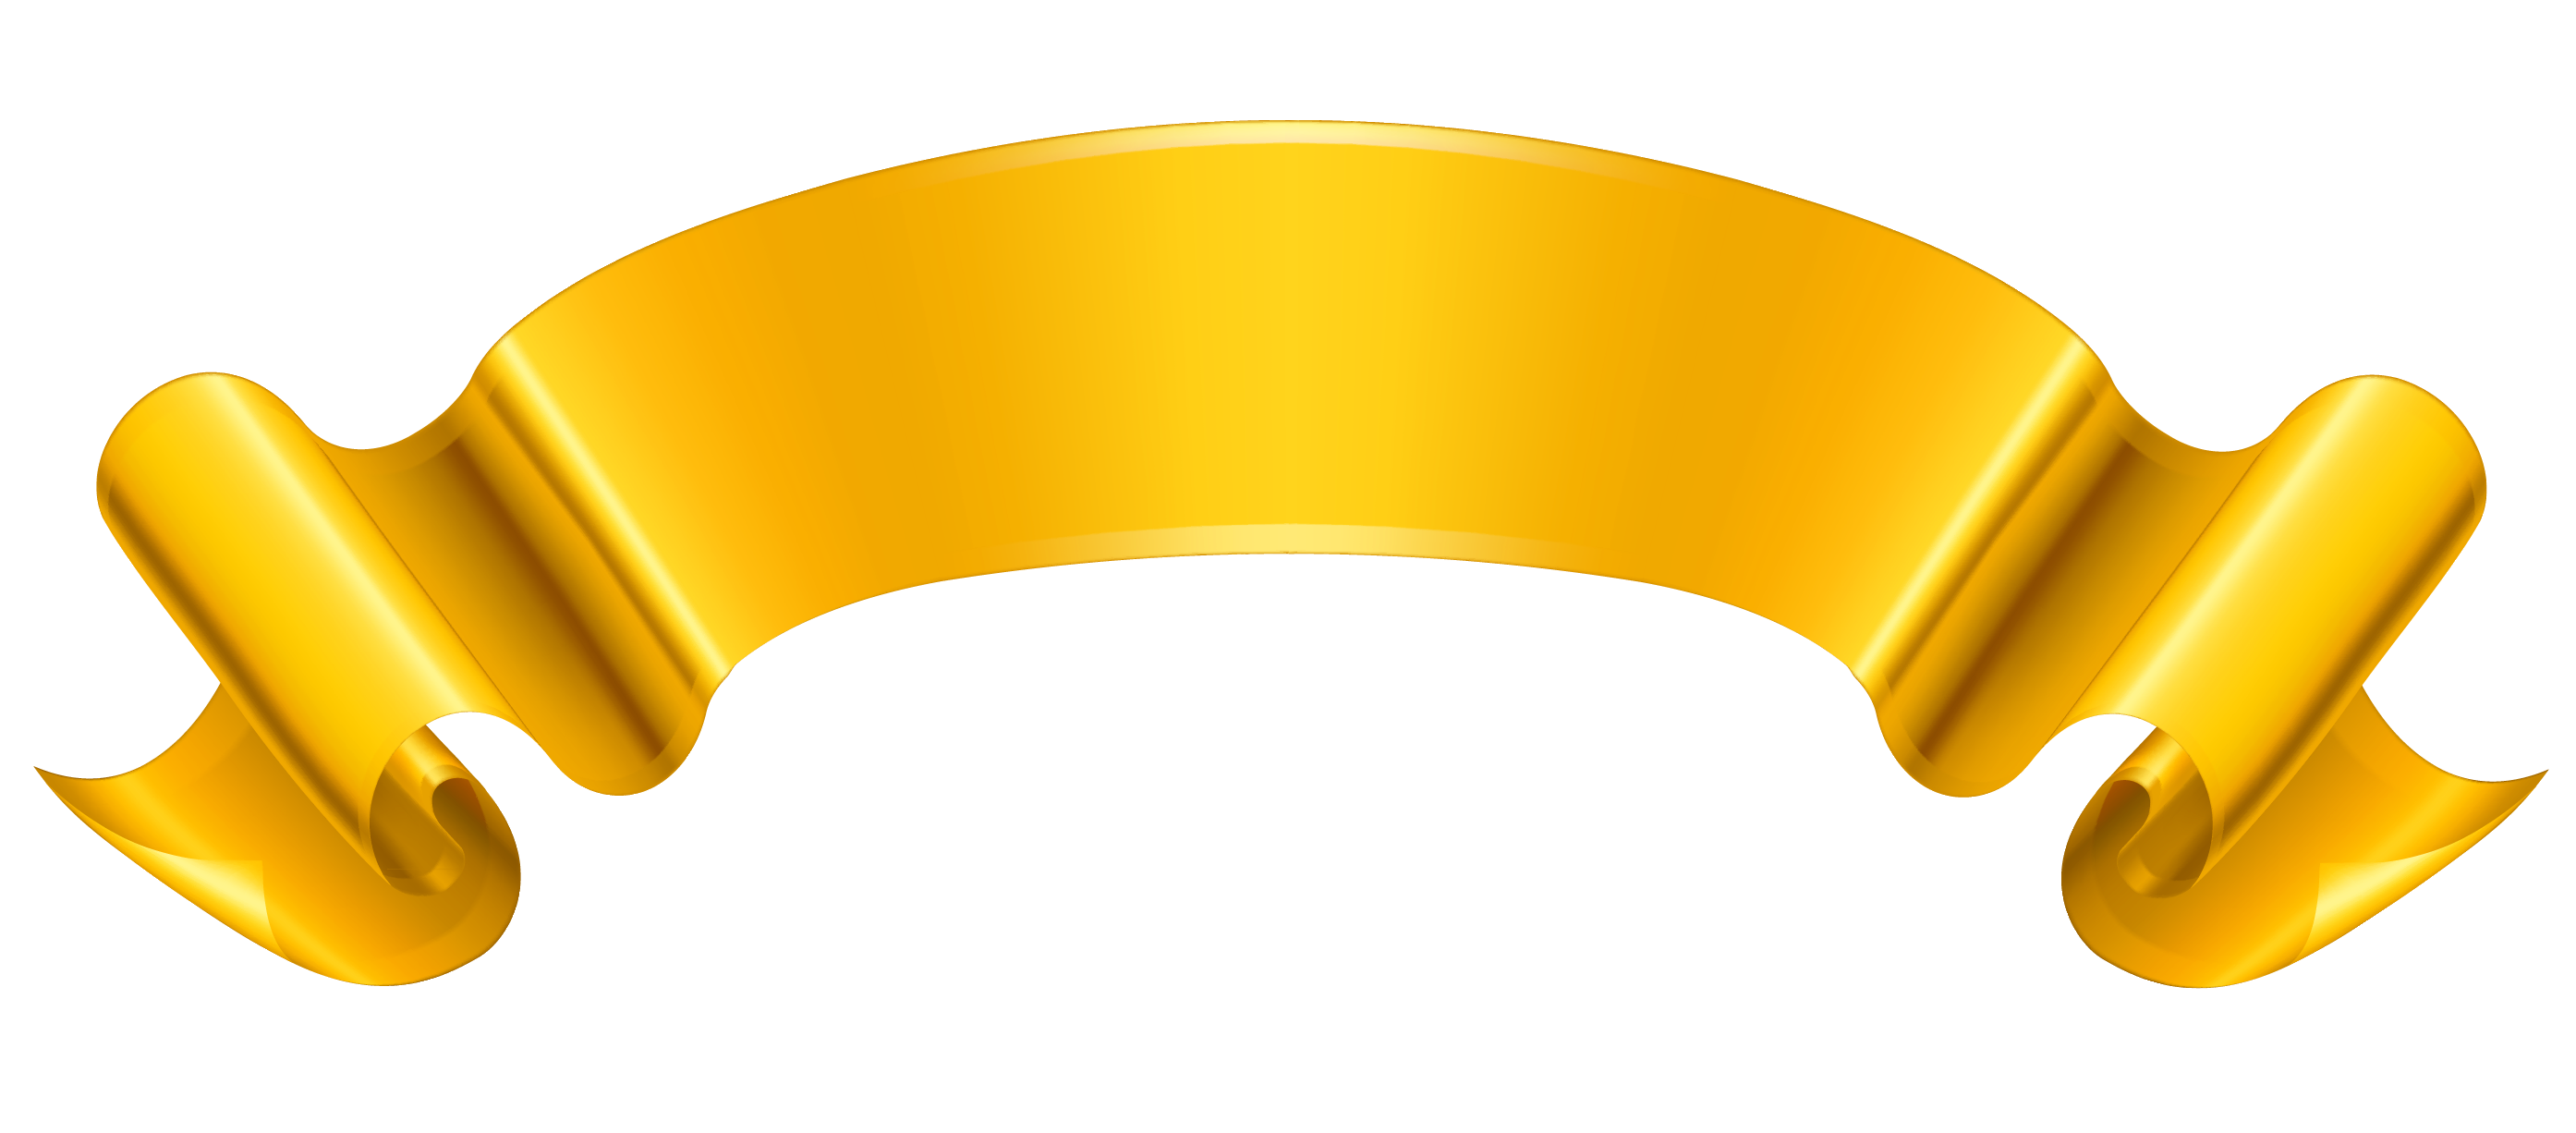 Free banner download clip. Ribbon png images